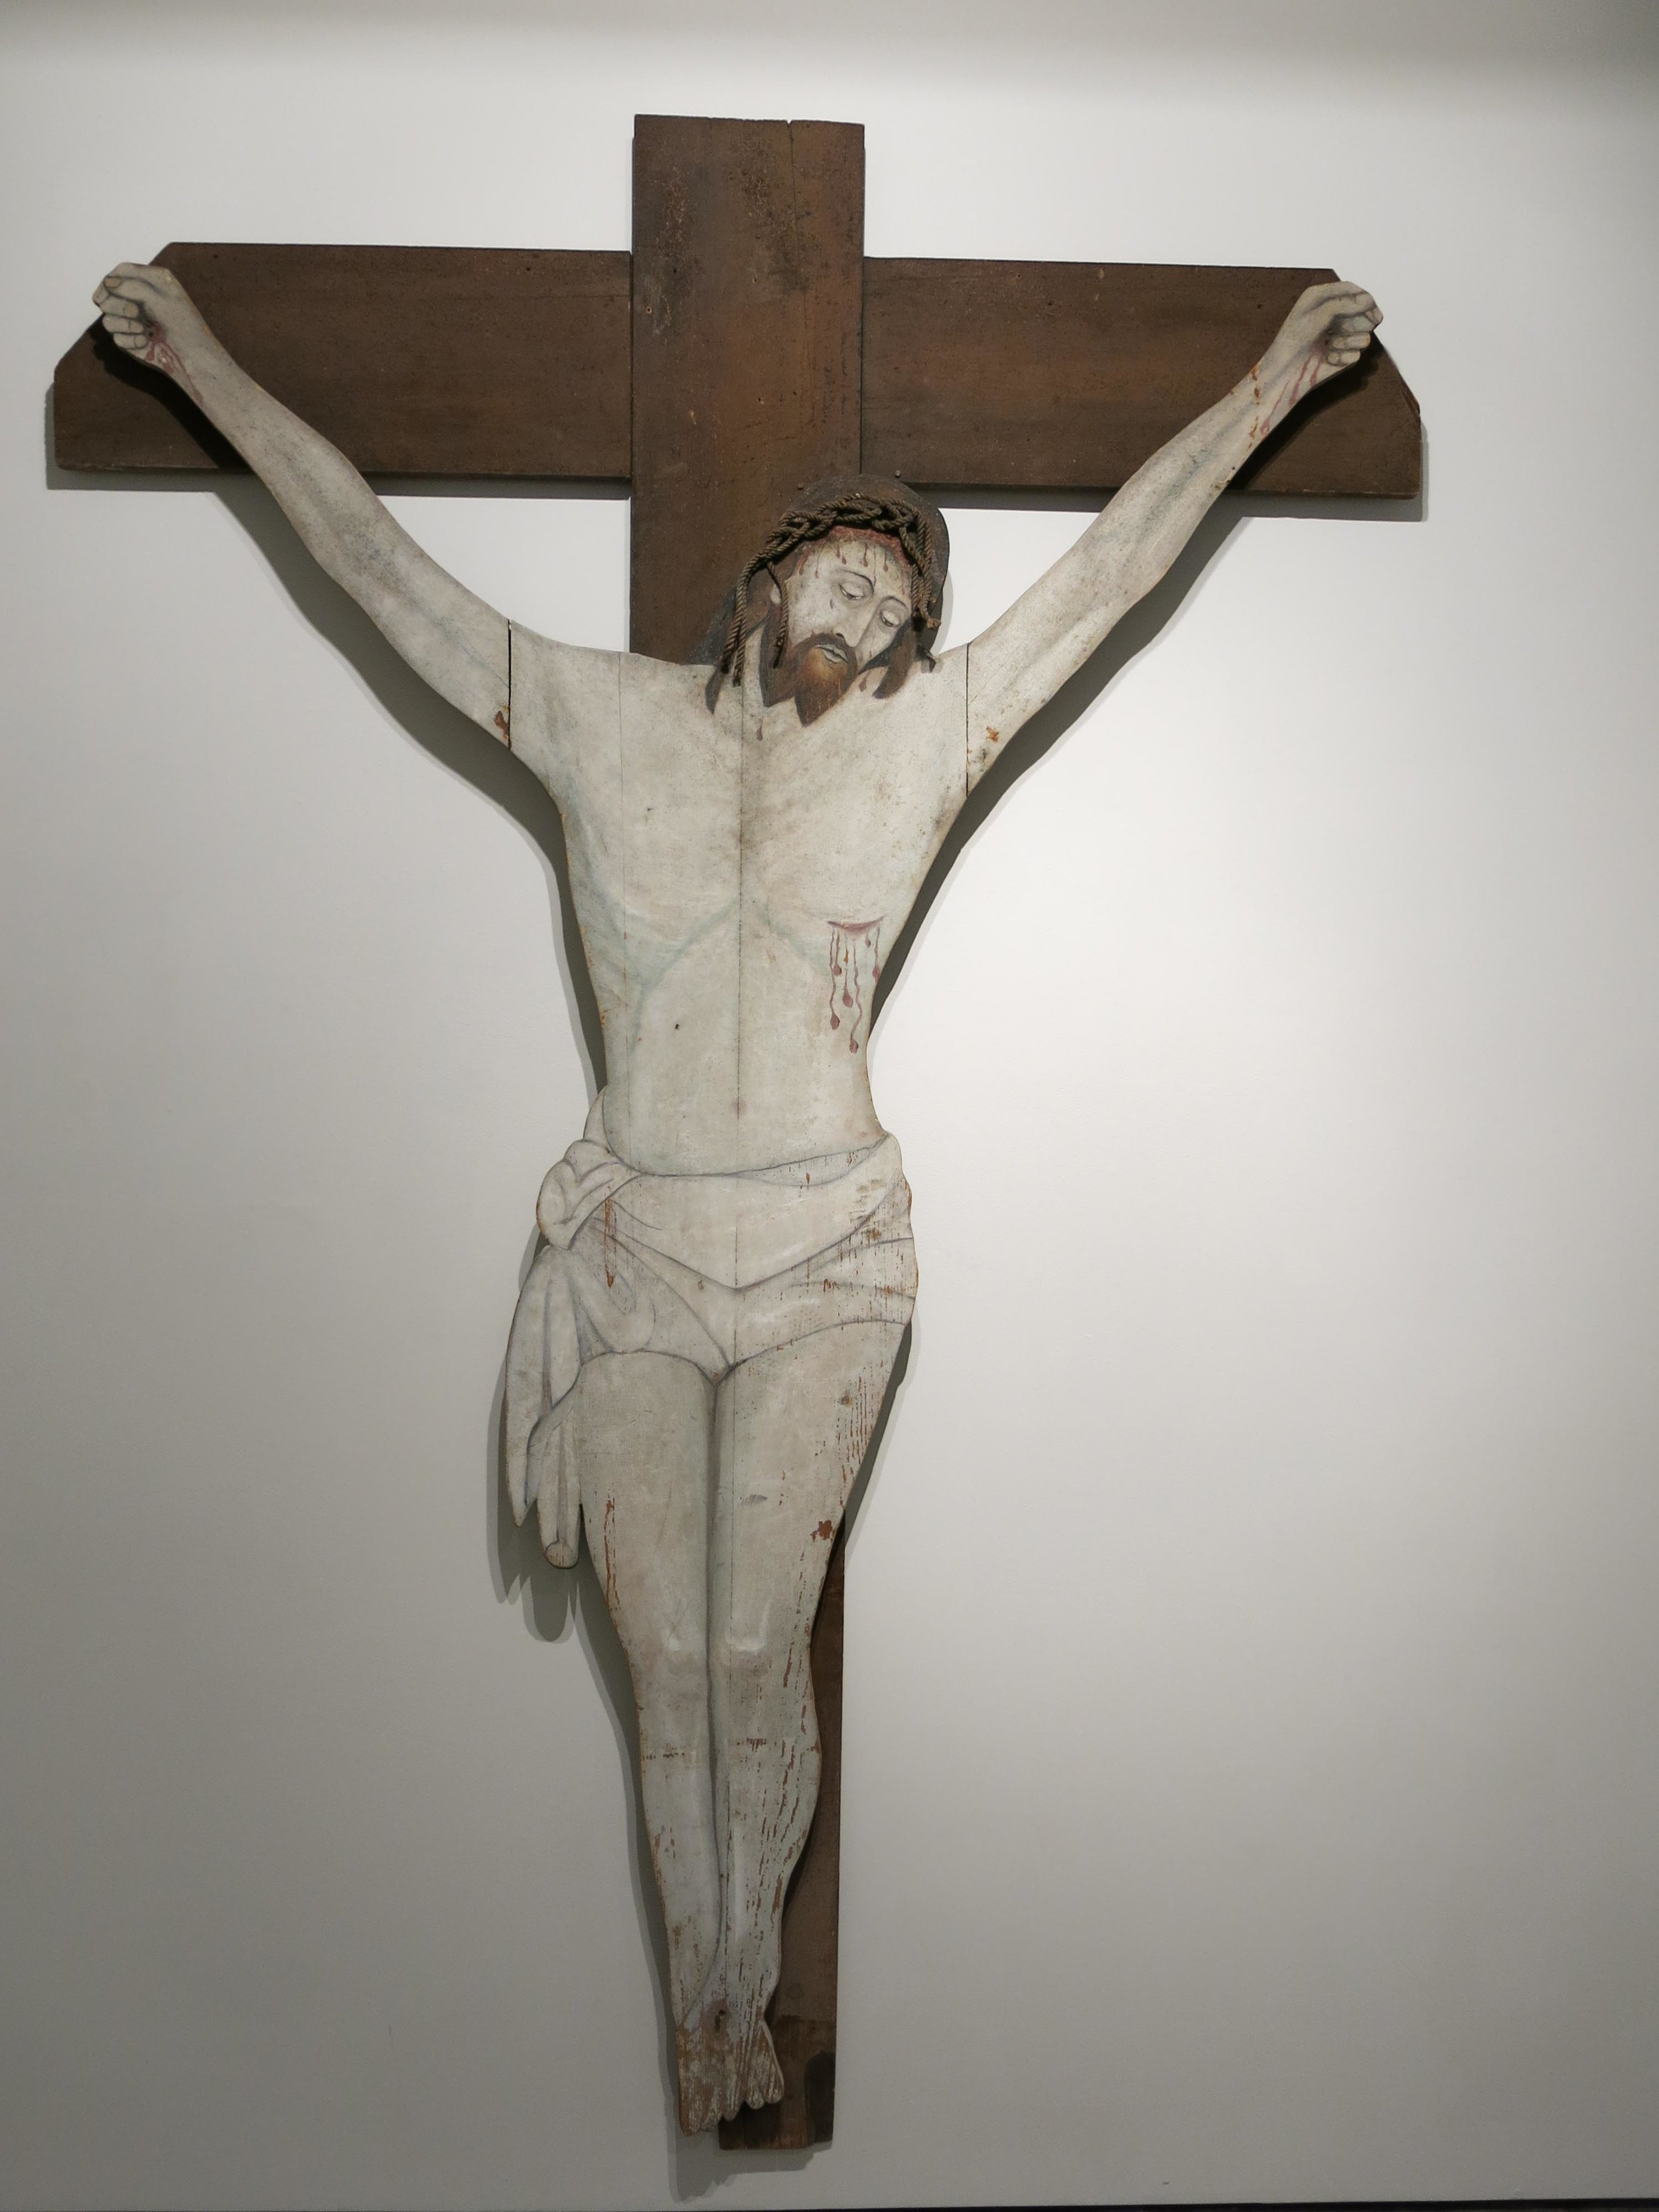 Anonymous, North American, Crucifix, c. 1900, wood and rope with original paint, 107h x 70w x 3.5d in.